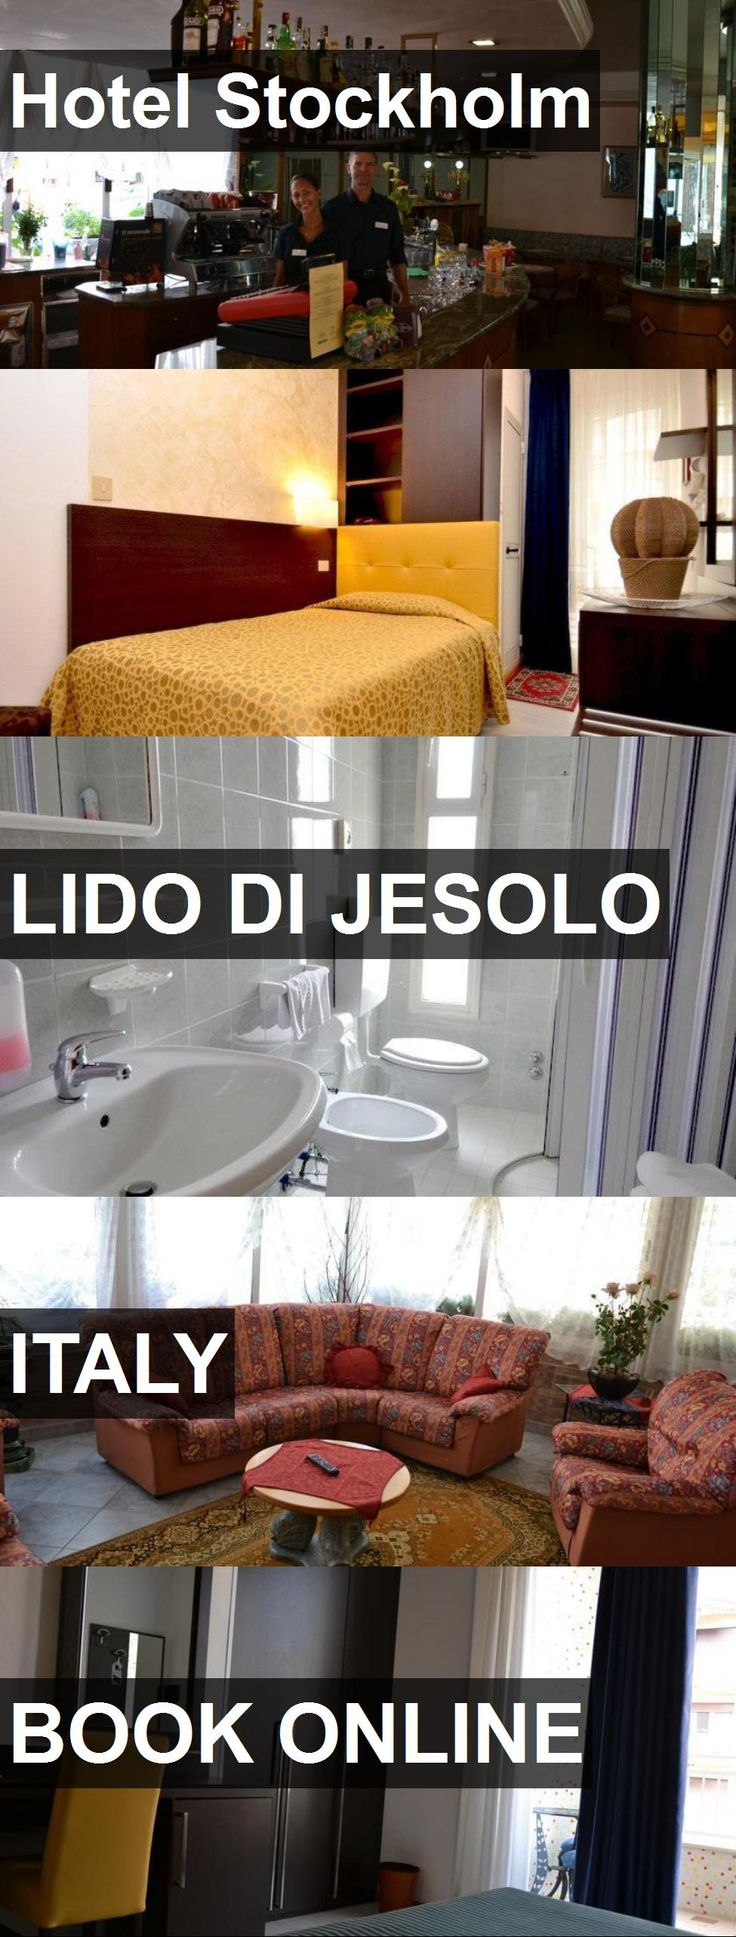 Hotel Stockholm in Lido di Jesolo, Italy. For more information, photos, reviews and best prices please follow the link. #Italy #LidodiJesolo #travel #vacation #hotel